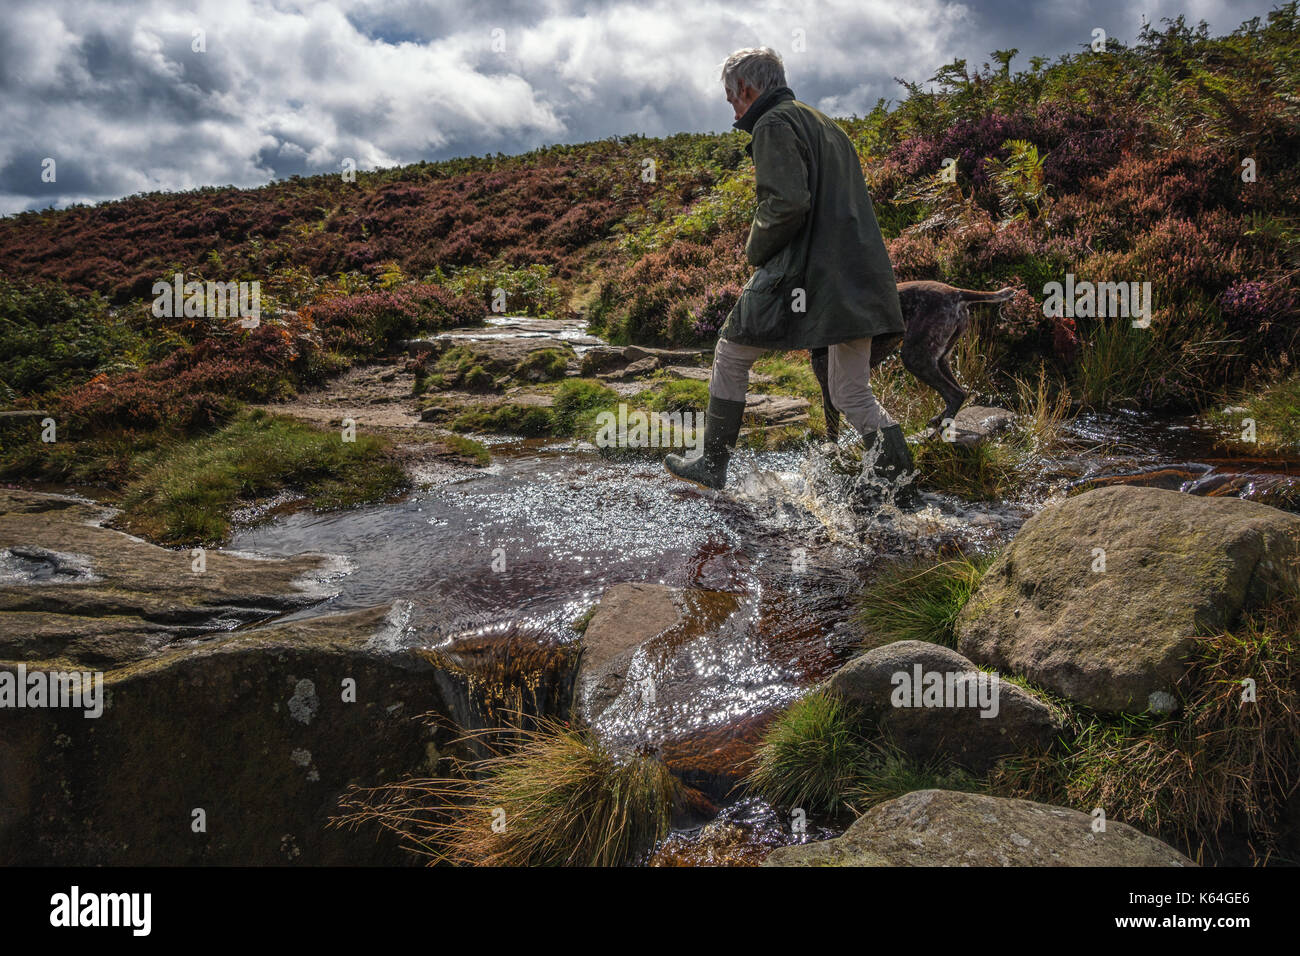 Ilkley, West Yorkshire, UK. 11th Sep, 2017. UK Weather. Splashing through puddles on Ilkley Moor - a dog walker person enjoys an autumnal, sunny countryside walk in wellington boots on moorland path awash with rainfall runoff. Credit: Rebecca Cole/Alamy Live News - Stock Image